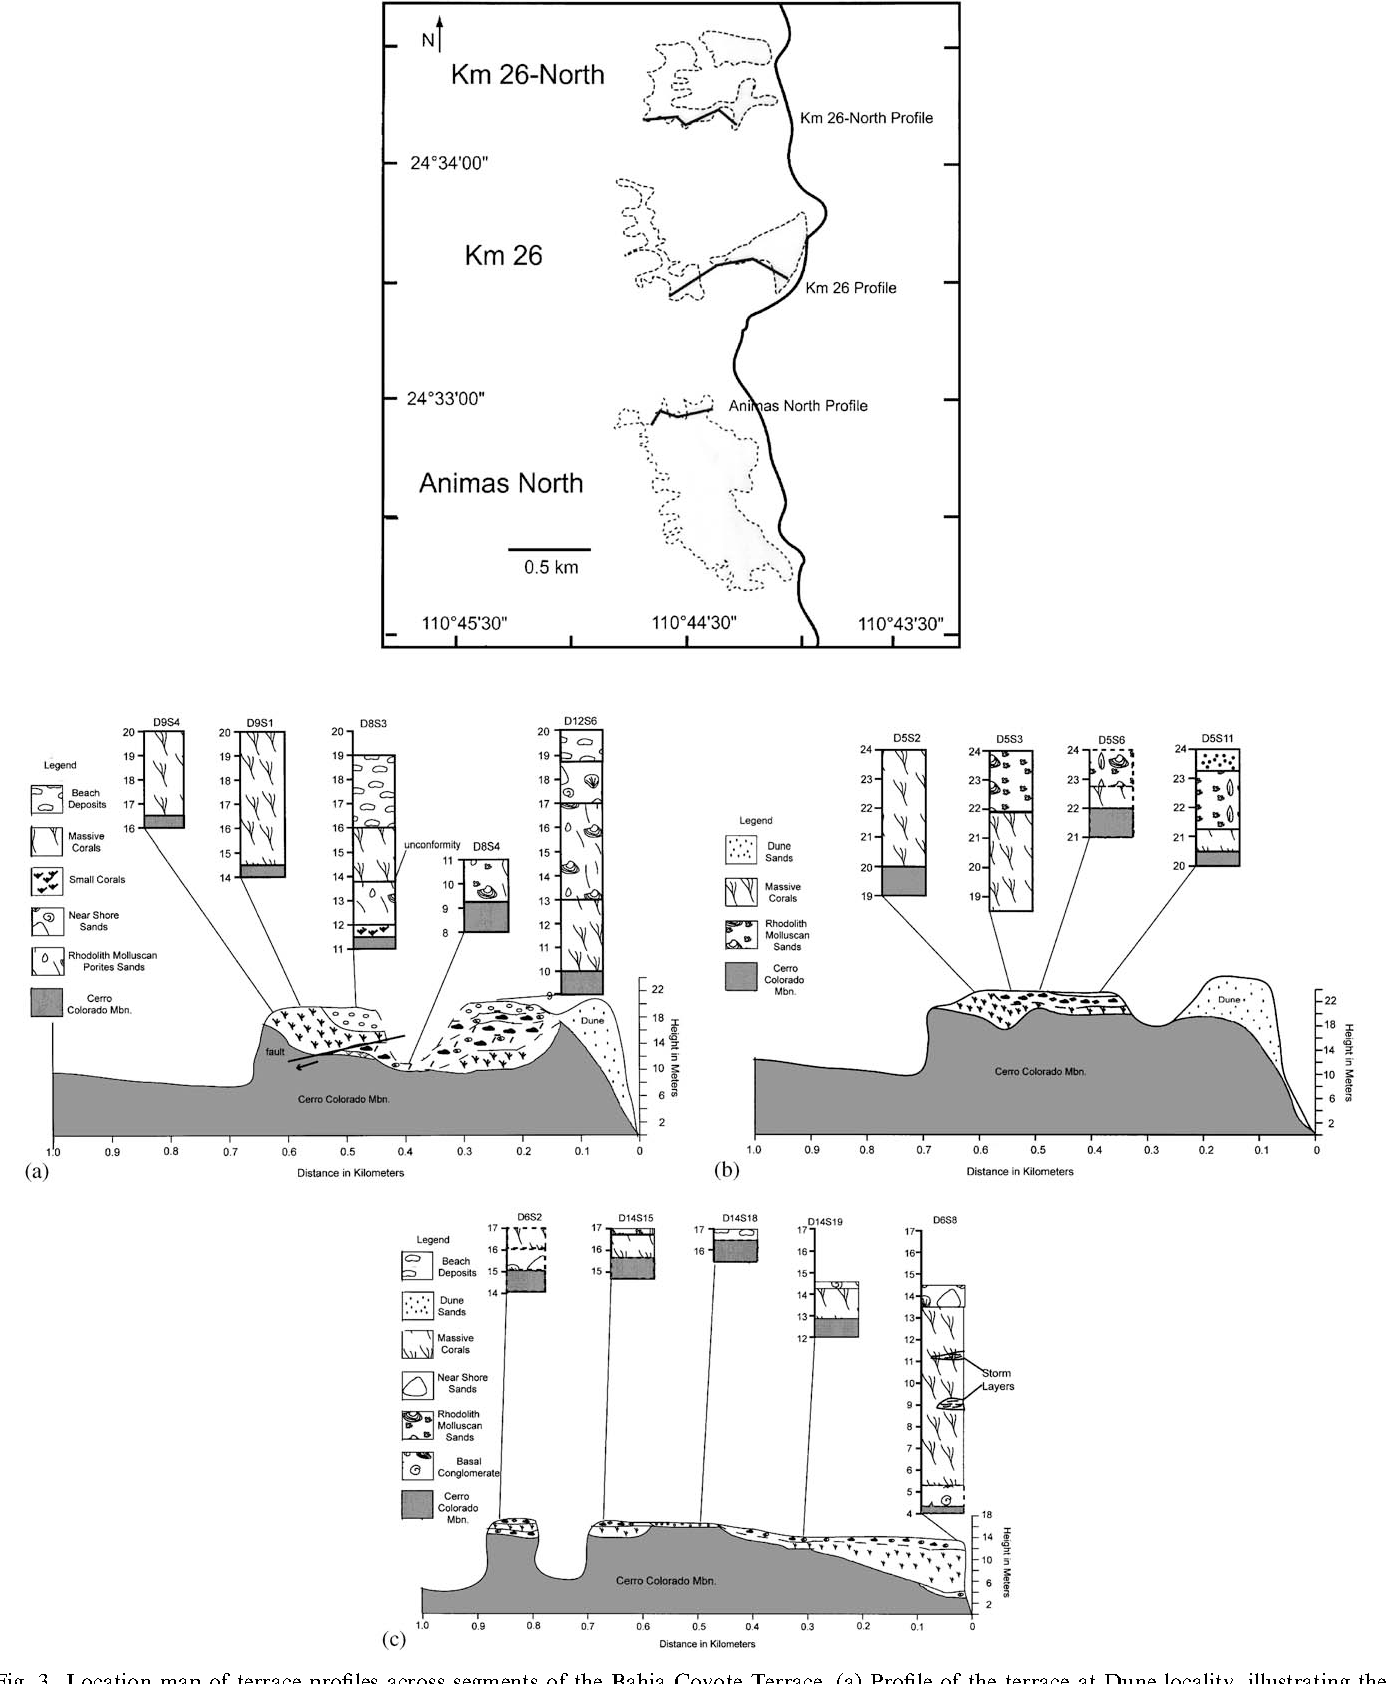 Fig. 3. Location map of terrace profiles across segments of the Bahia Coyote Terrace. (a) Profile of the terrace at Dune locality, illustrating the distribution and thickness of the main facies. Profile drawn roughly perpendicular to the coastline. Elevations in meters; distances in km. (b) Profile of the terrace at Las Animas-North locality, illustrating the distribution and thickness of the main facies. Profile drawn roughly perpendicular to the coastline. Elevations in meters; distances in km. (c) Profile of the terrace at Km 26-South locality, illustrating the distribution and thickness of the main facies. Profile drawn roughly perpendicular to the coastline. Elevations in meters; distances in km.